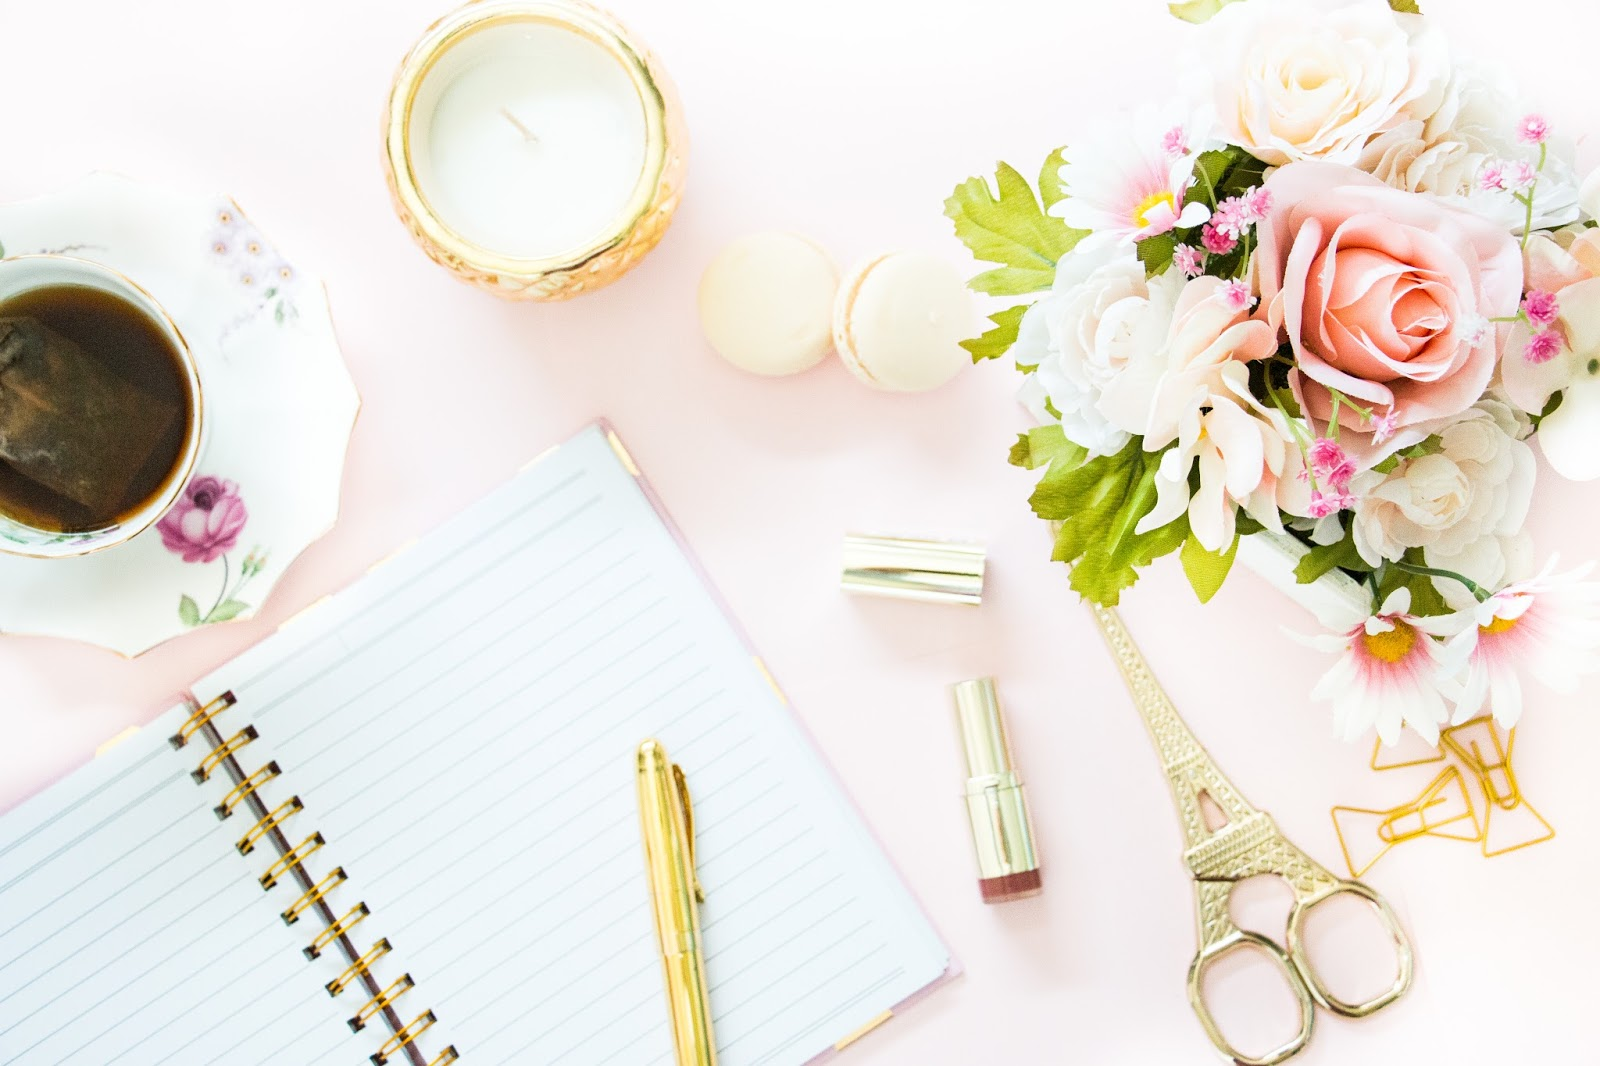 We've only got a couple weeks until moms everywhere are celebrated! Stumped on what to get the new mom in your life for her first Mother's Day? Here's a gift guide on what moms really want from a first-time mom.